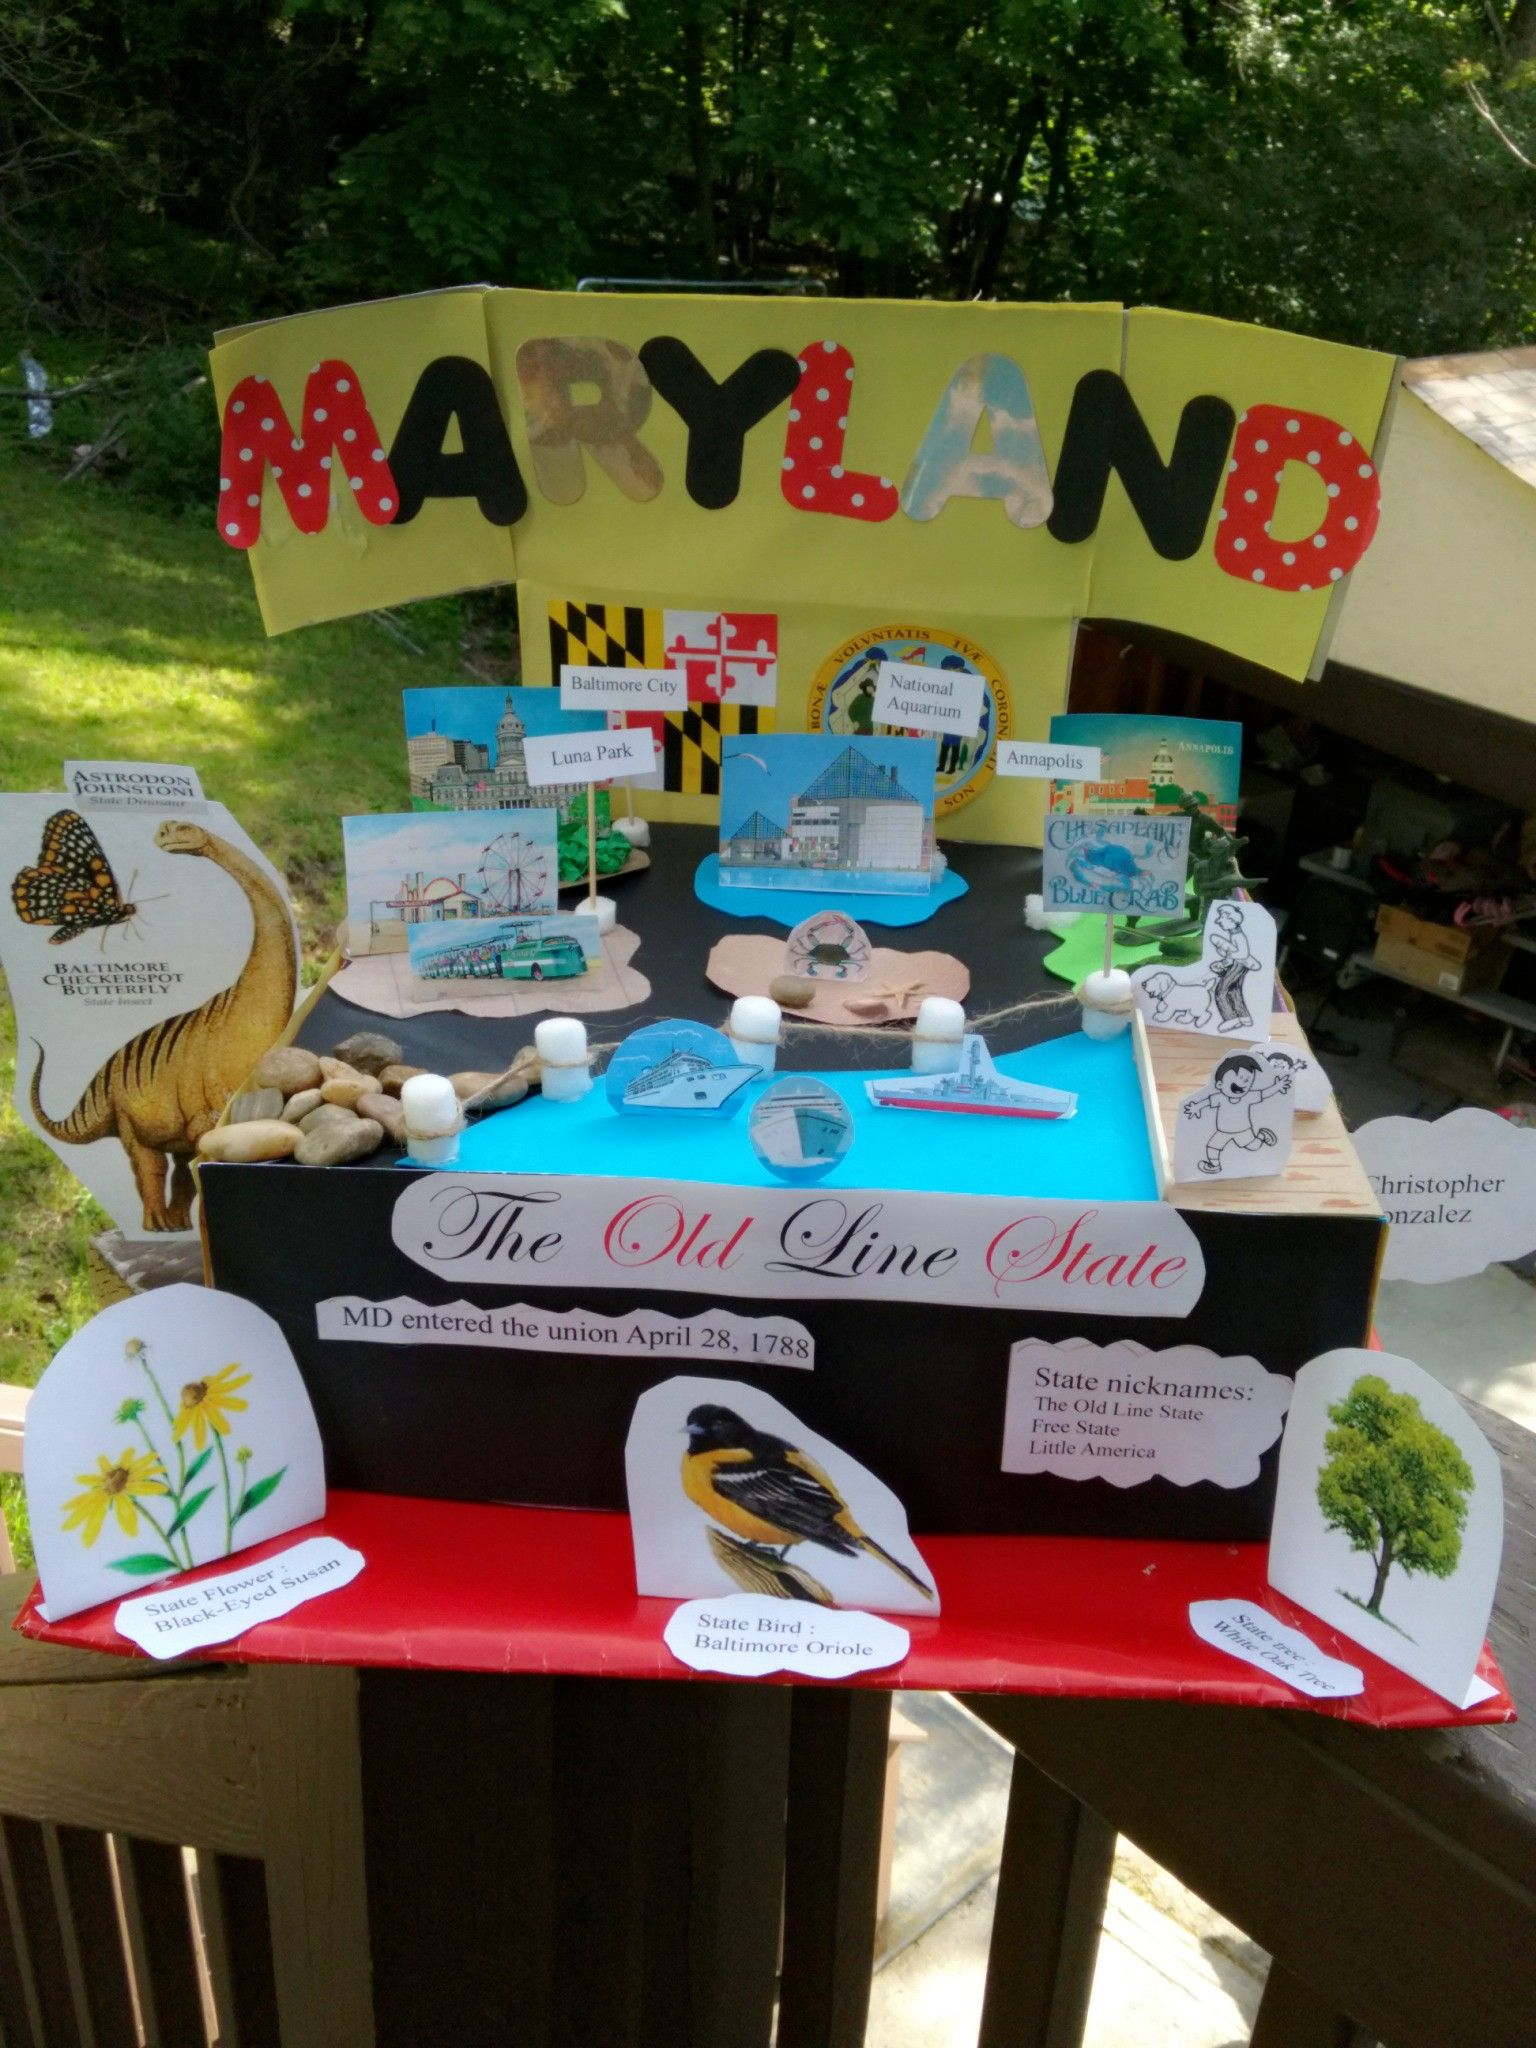 Pin by susana campos on state float ideas maryland pinterest school projects maryland project ideas diys ideas for projects bricolage do it yourself fai da te diy solutioingenieria Gallery